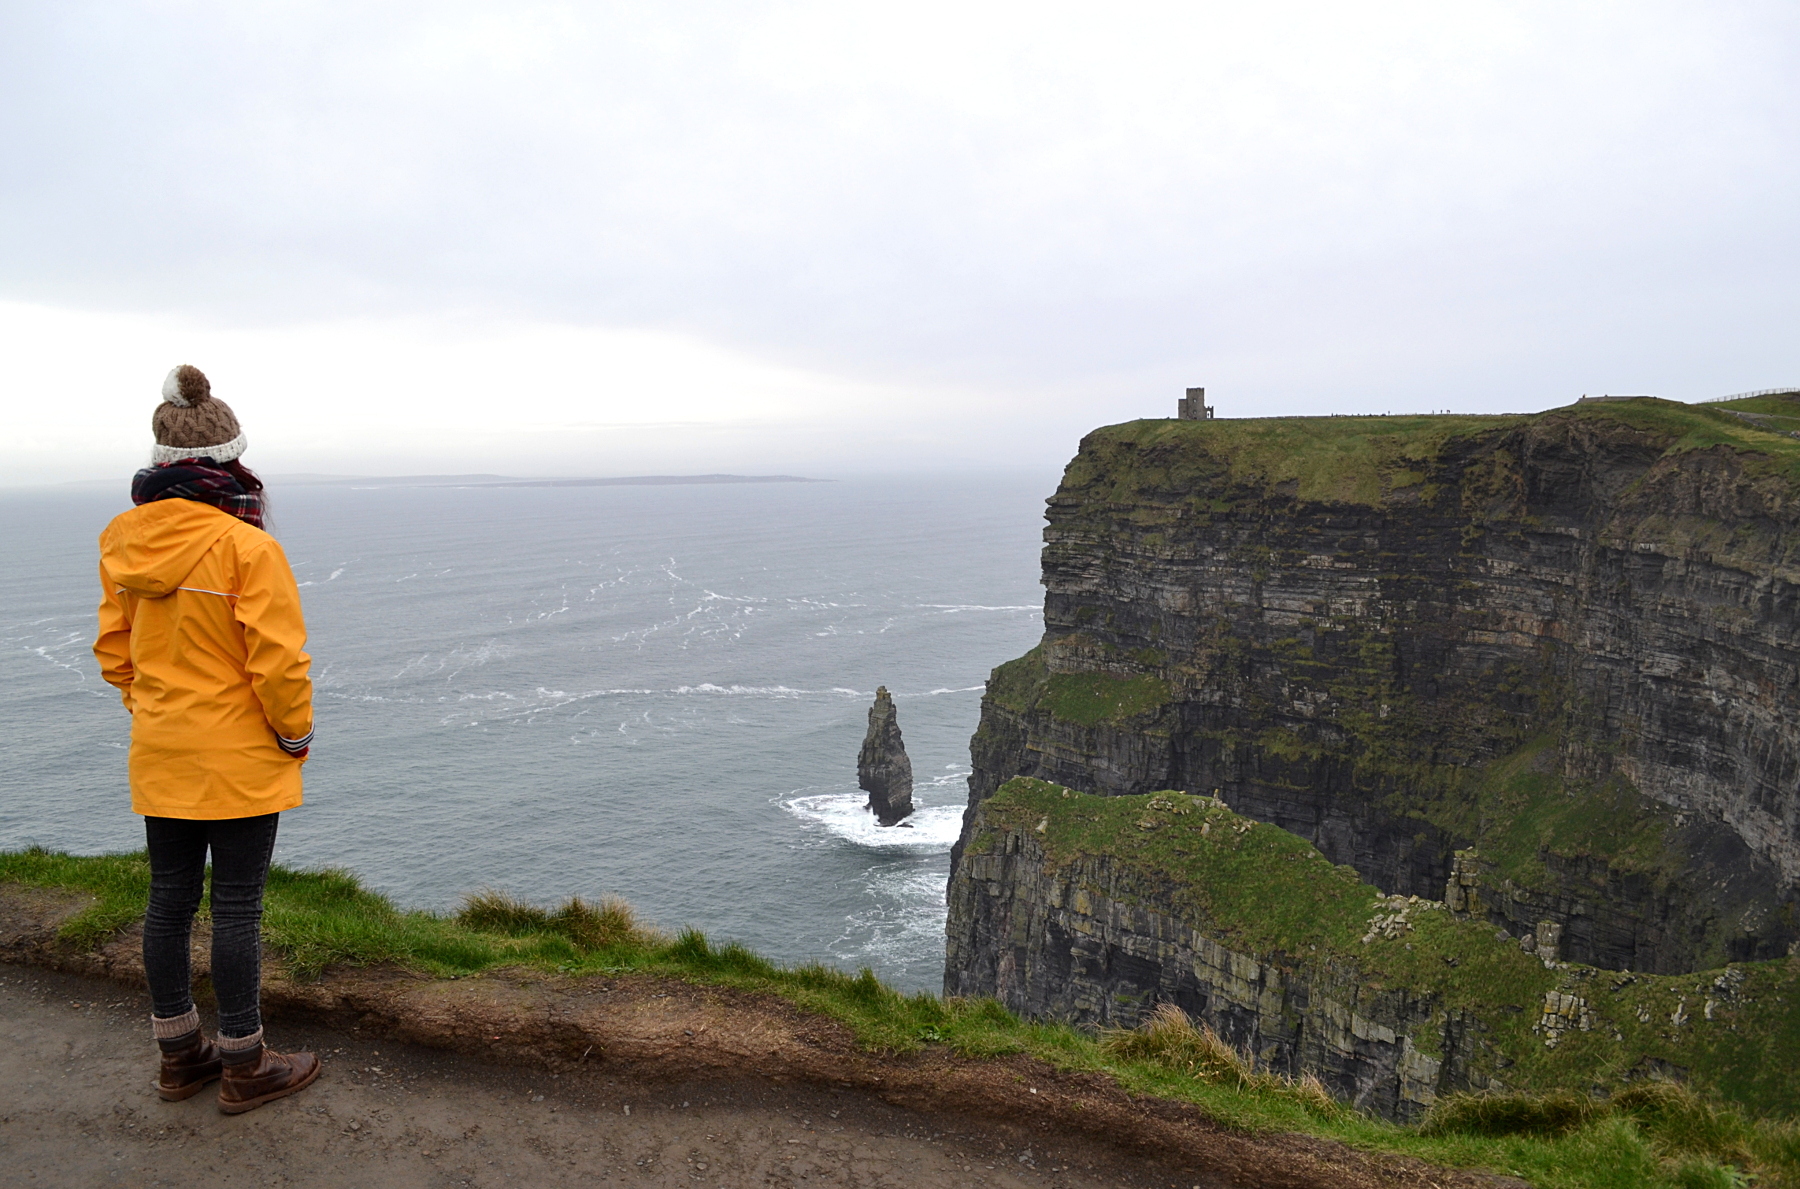 Falaises du Moher, Irlande, panorama landscape Cliffs of Moher, Ireland